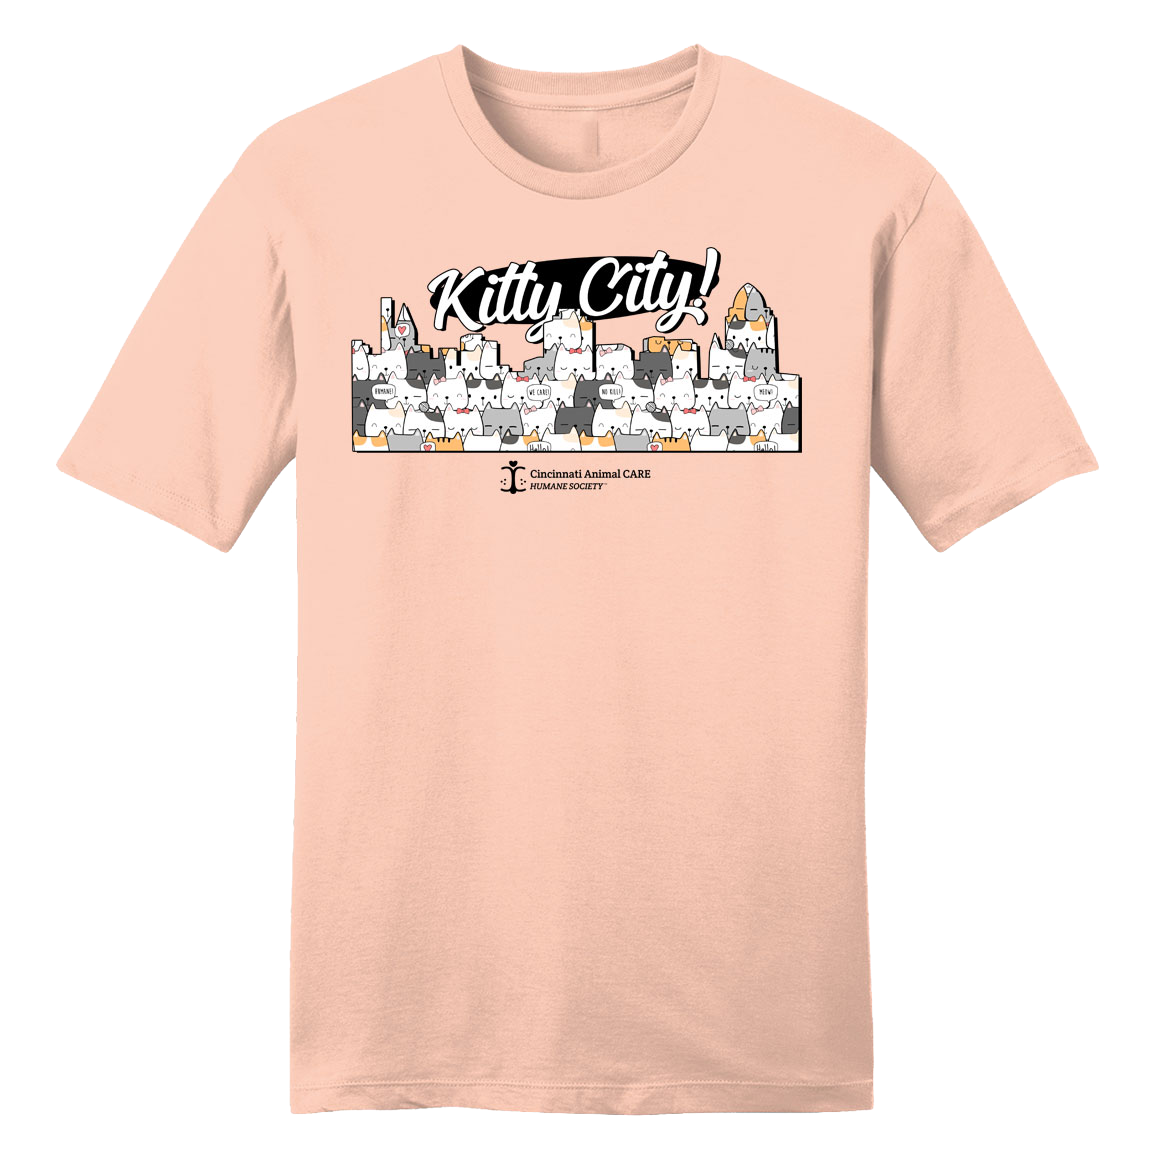 Kitty City - CARE - Cincy Shirts